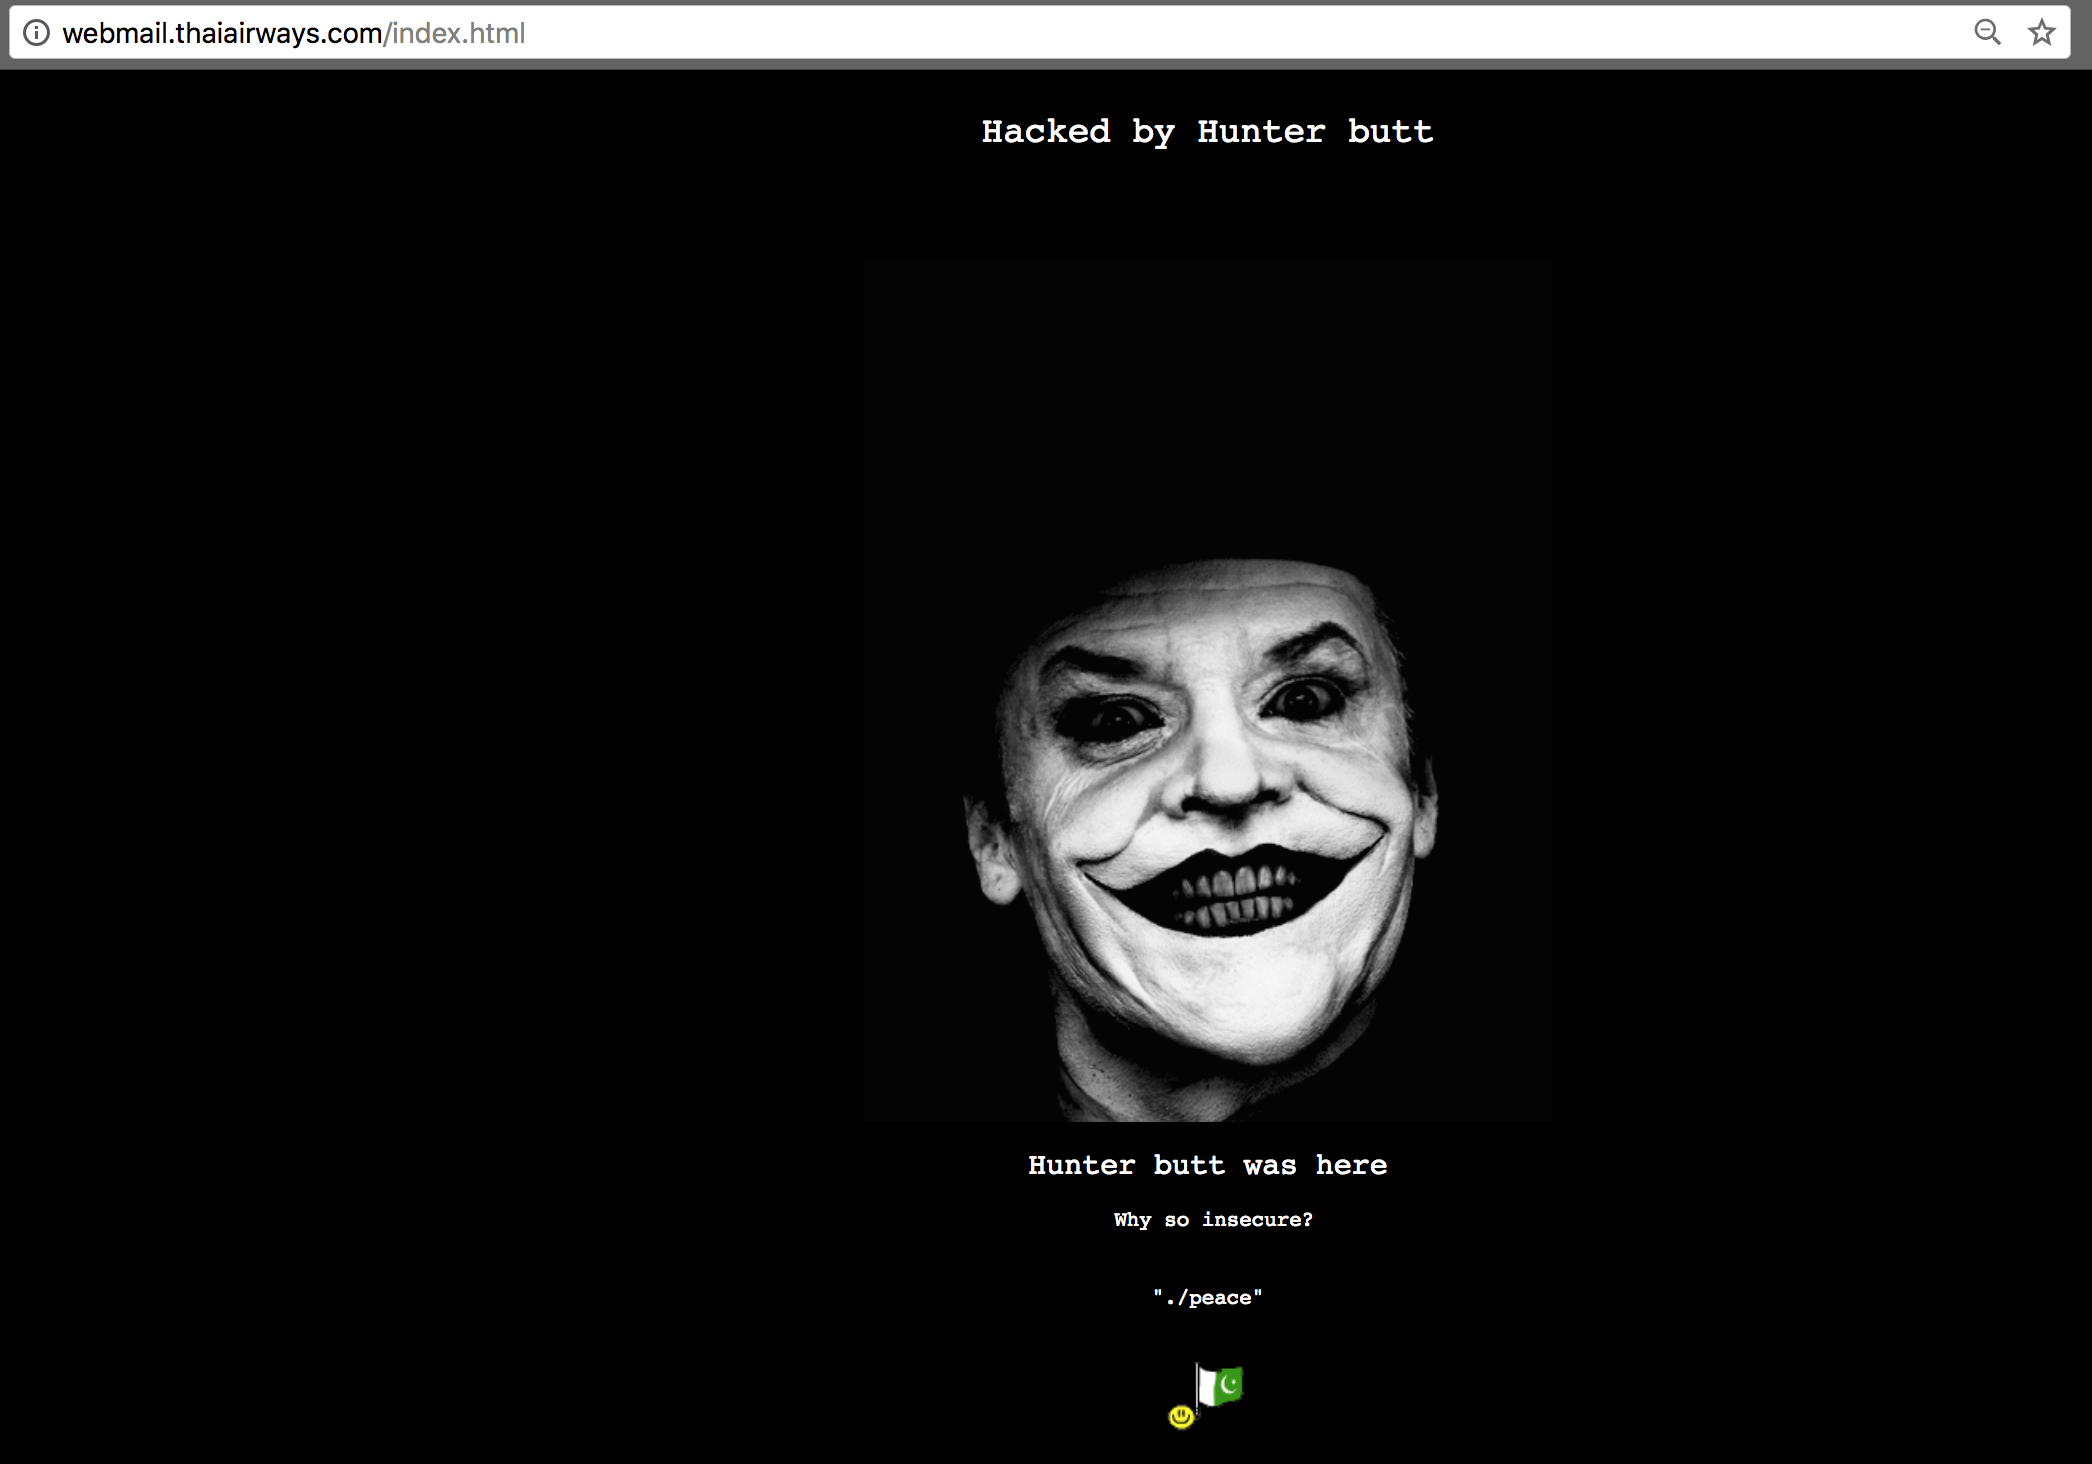 A screenshot of Thai Airways subdomain hacked and defaced by a Pakistani hacker named Hunter Butt.